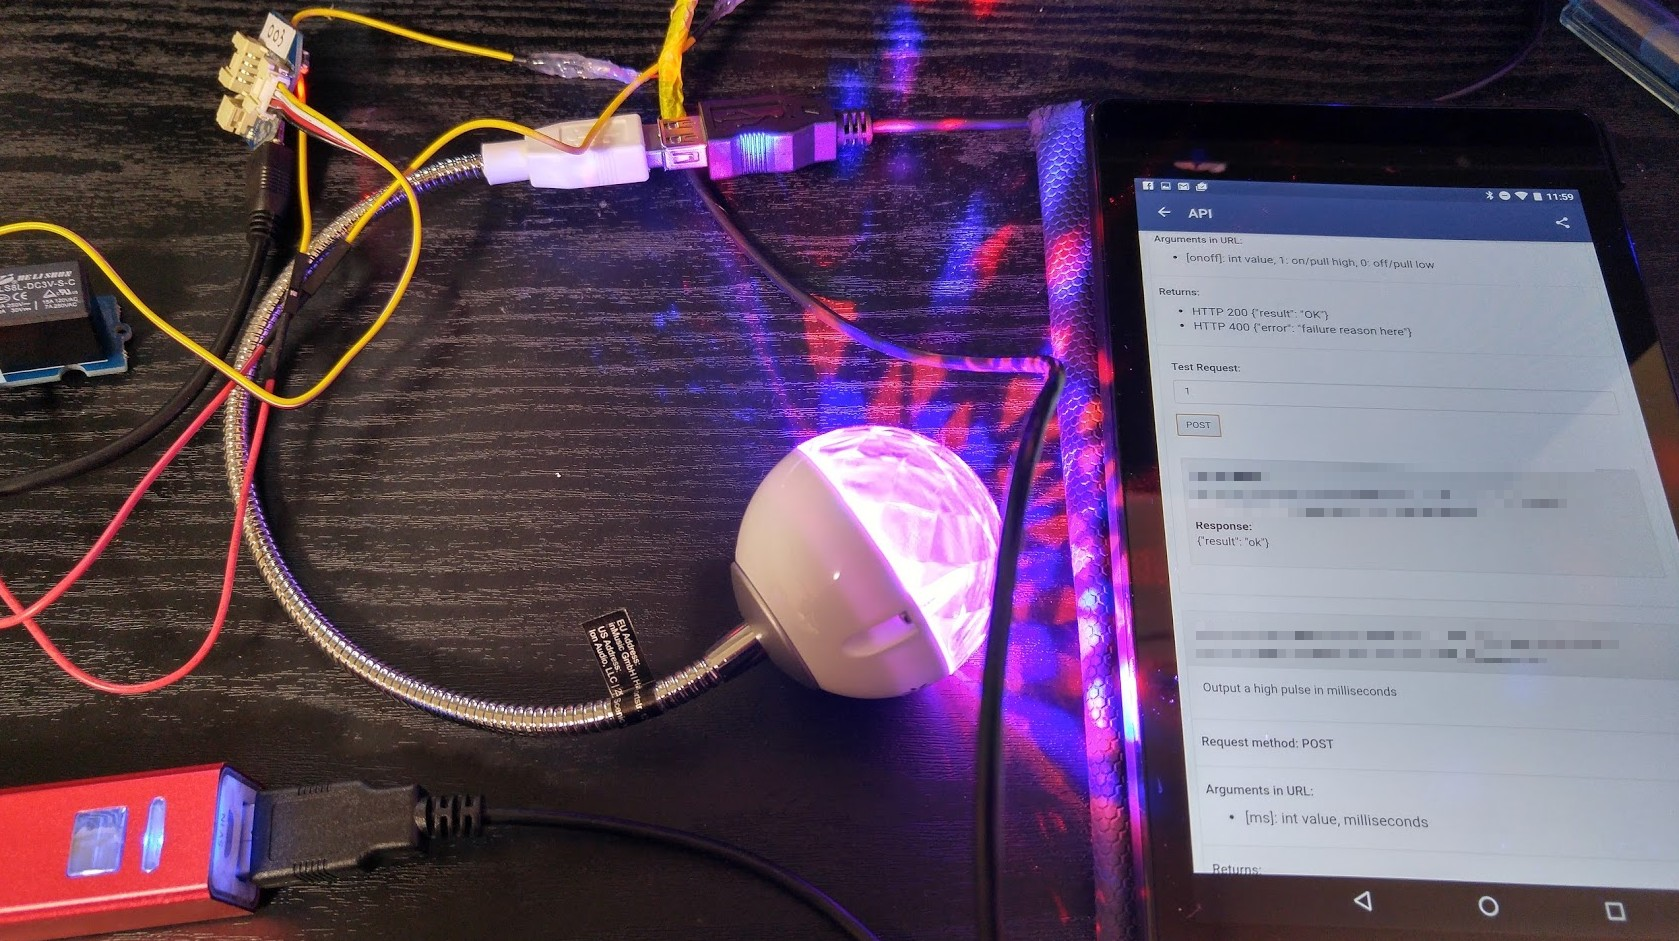 wio-node_grove-relay_usb-cable_iot-hack_11